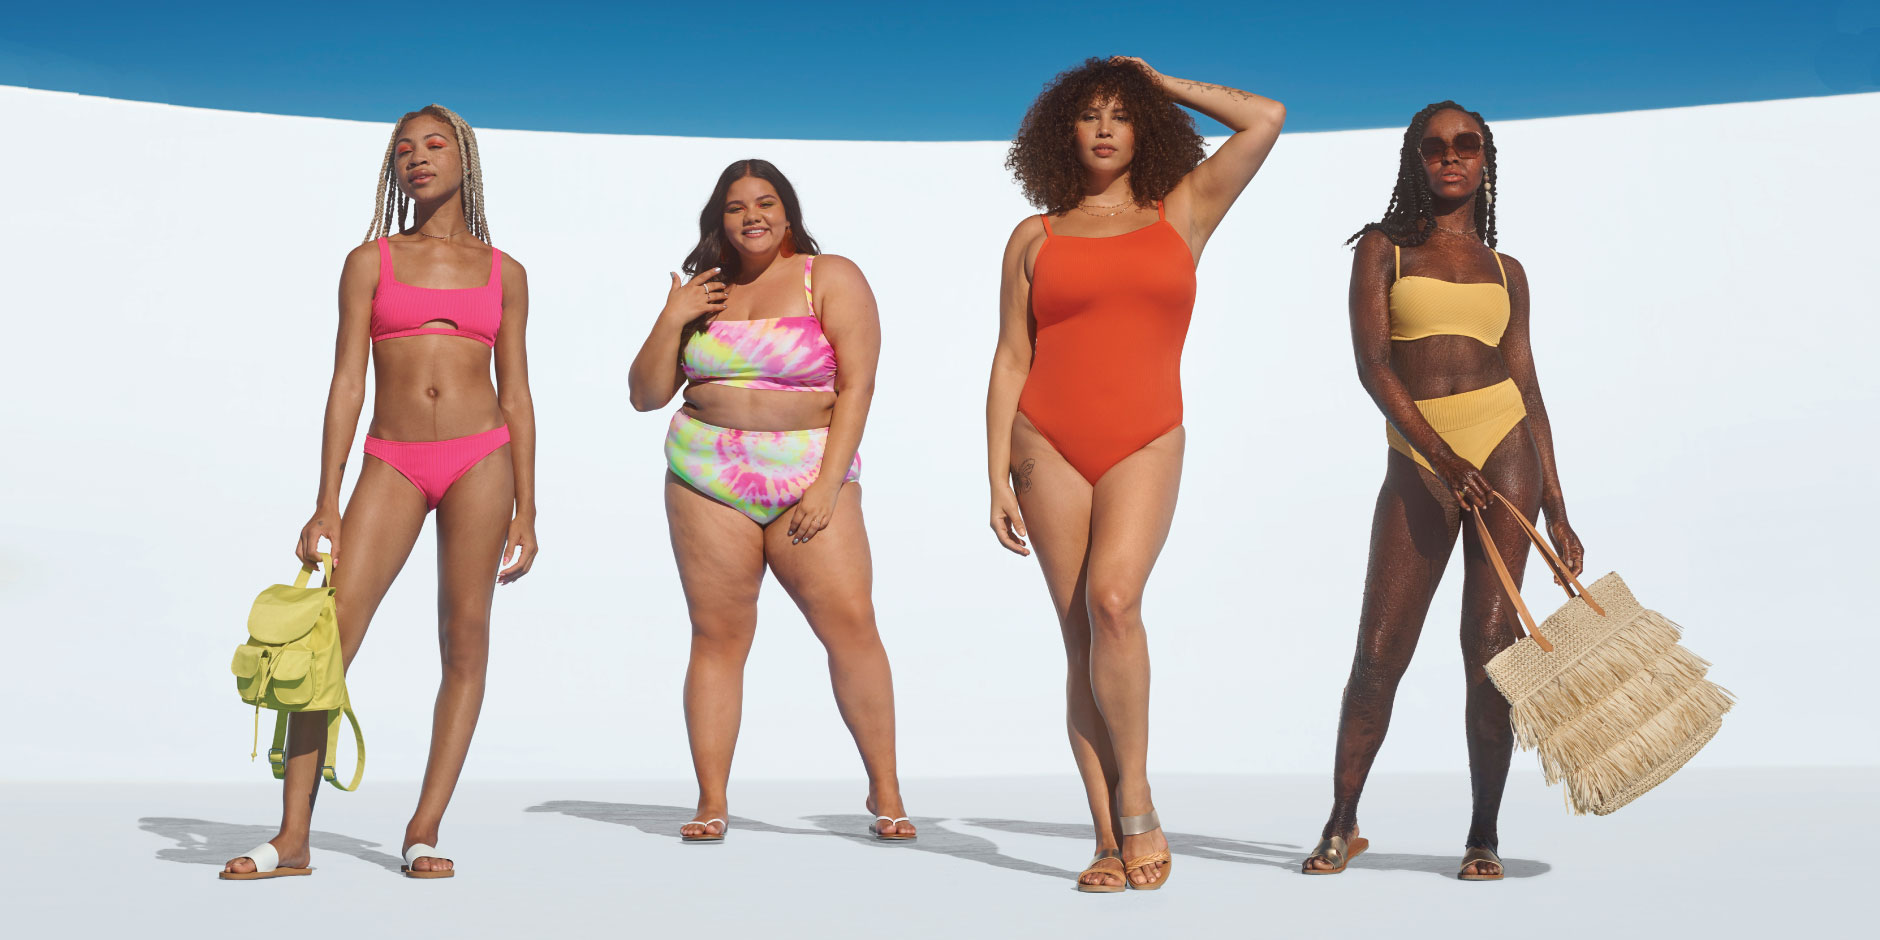 Four women wear vibrant Target swim suits